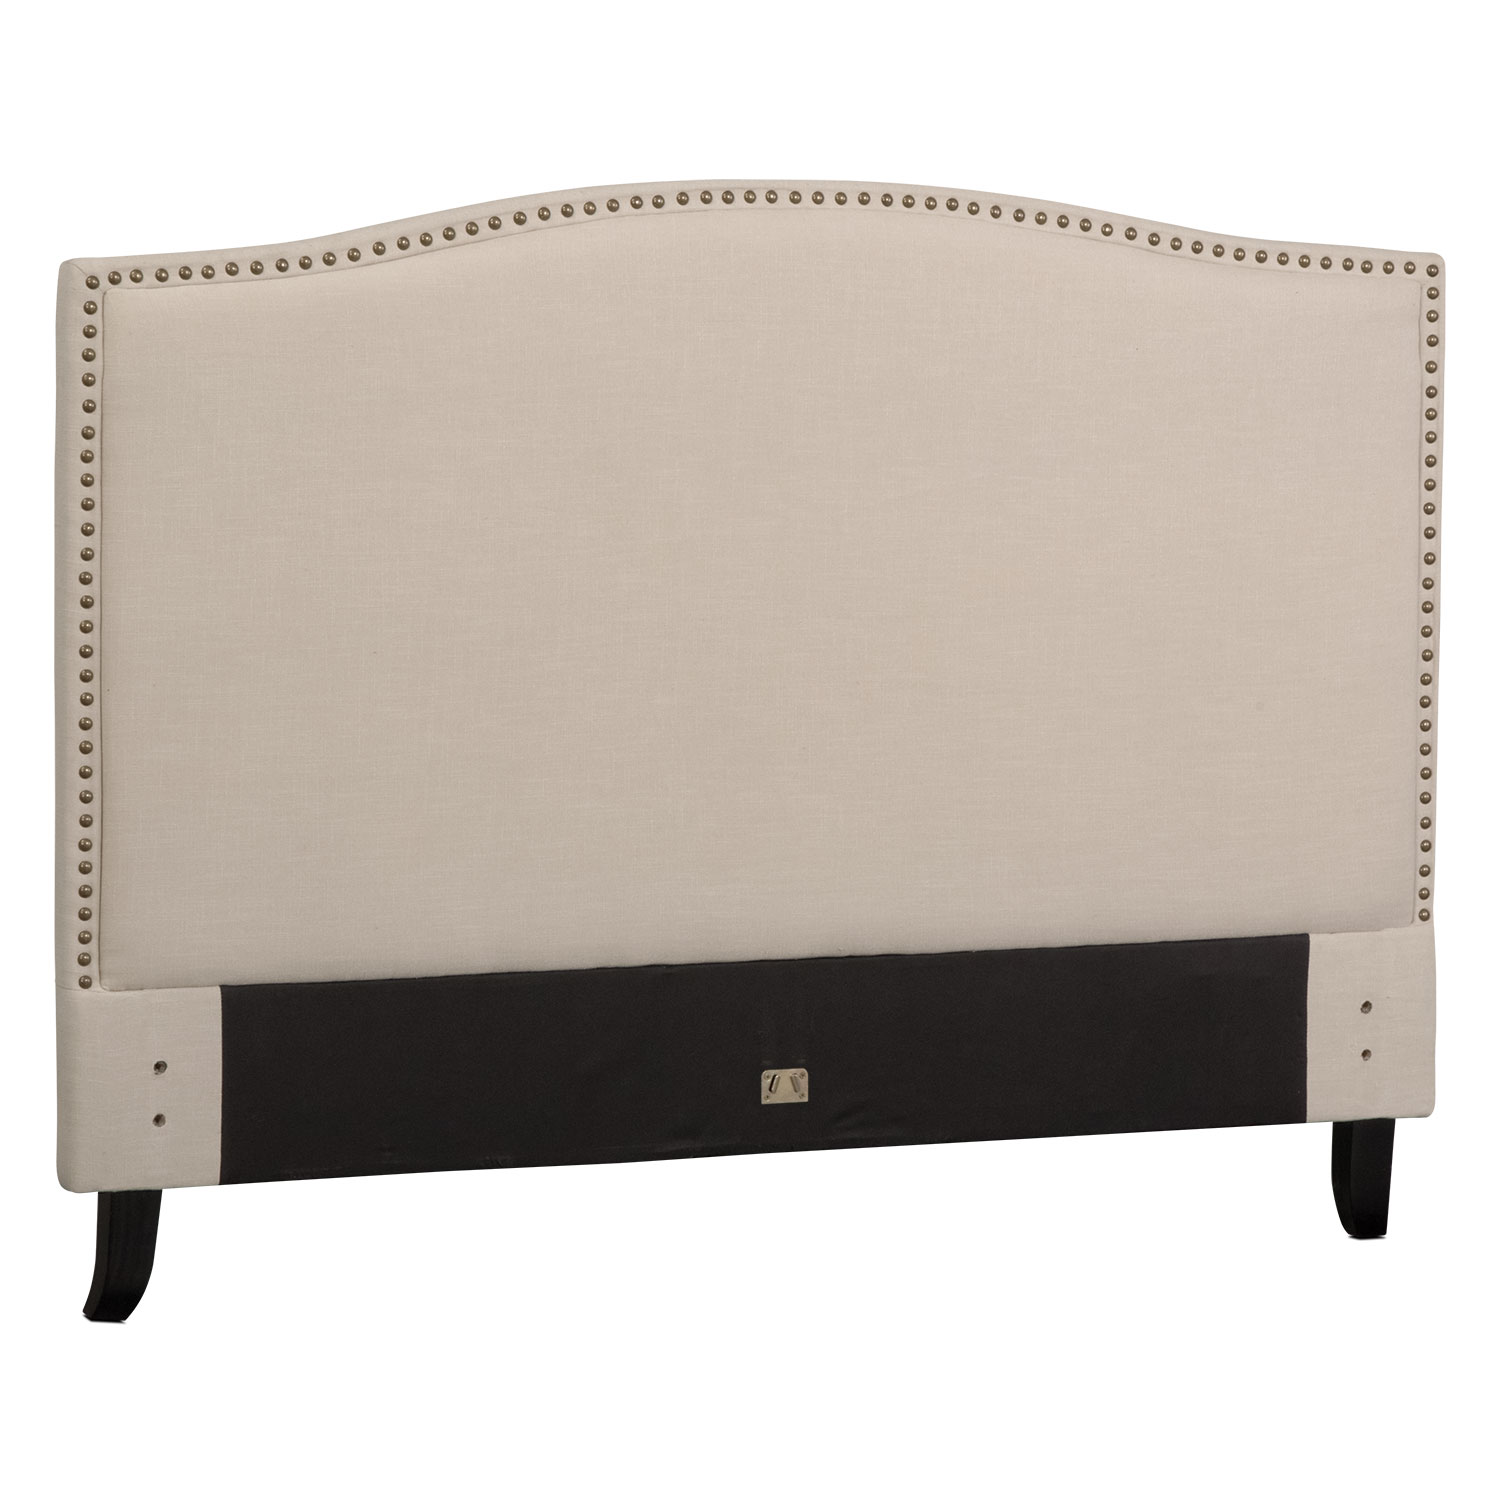 Bedroom Furniture - Aubrey Upholstered Headboard